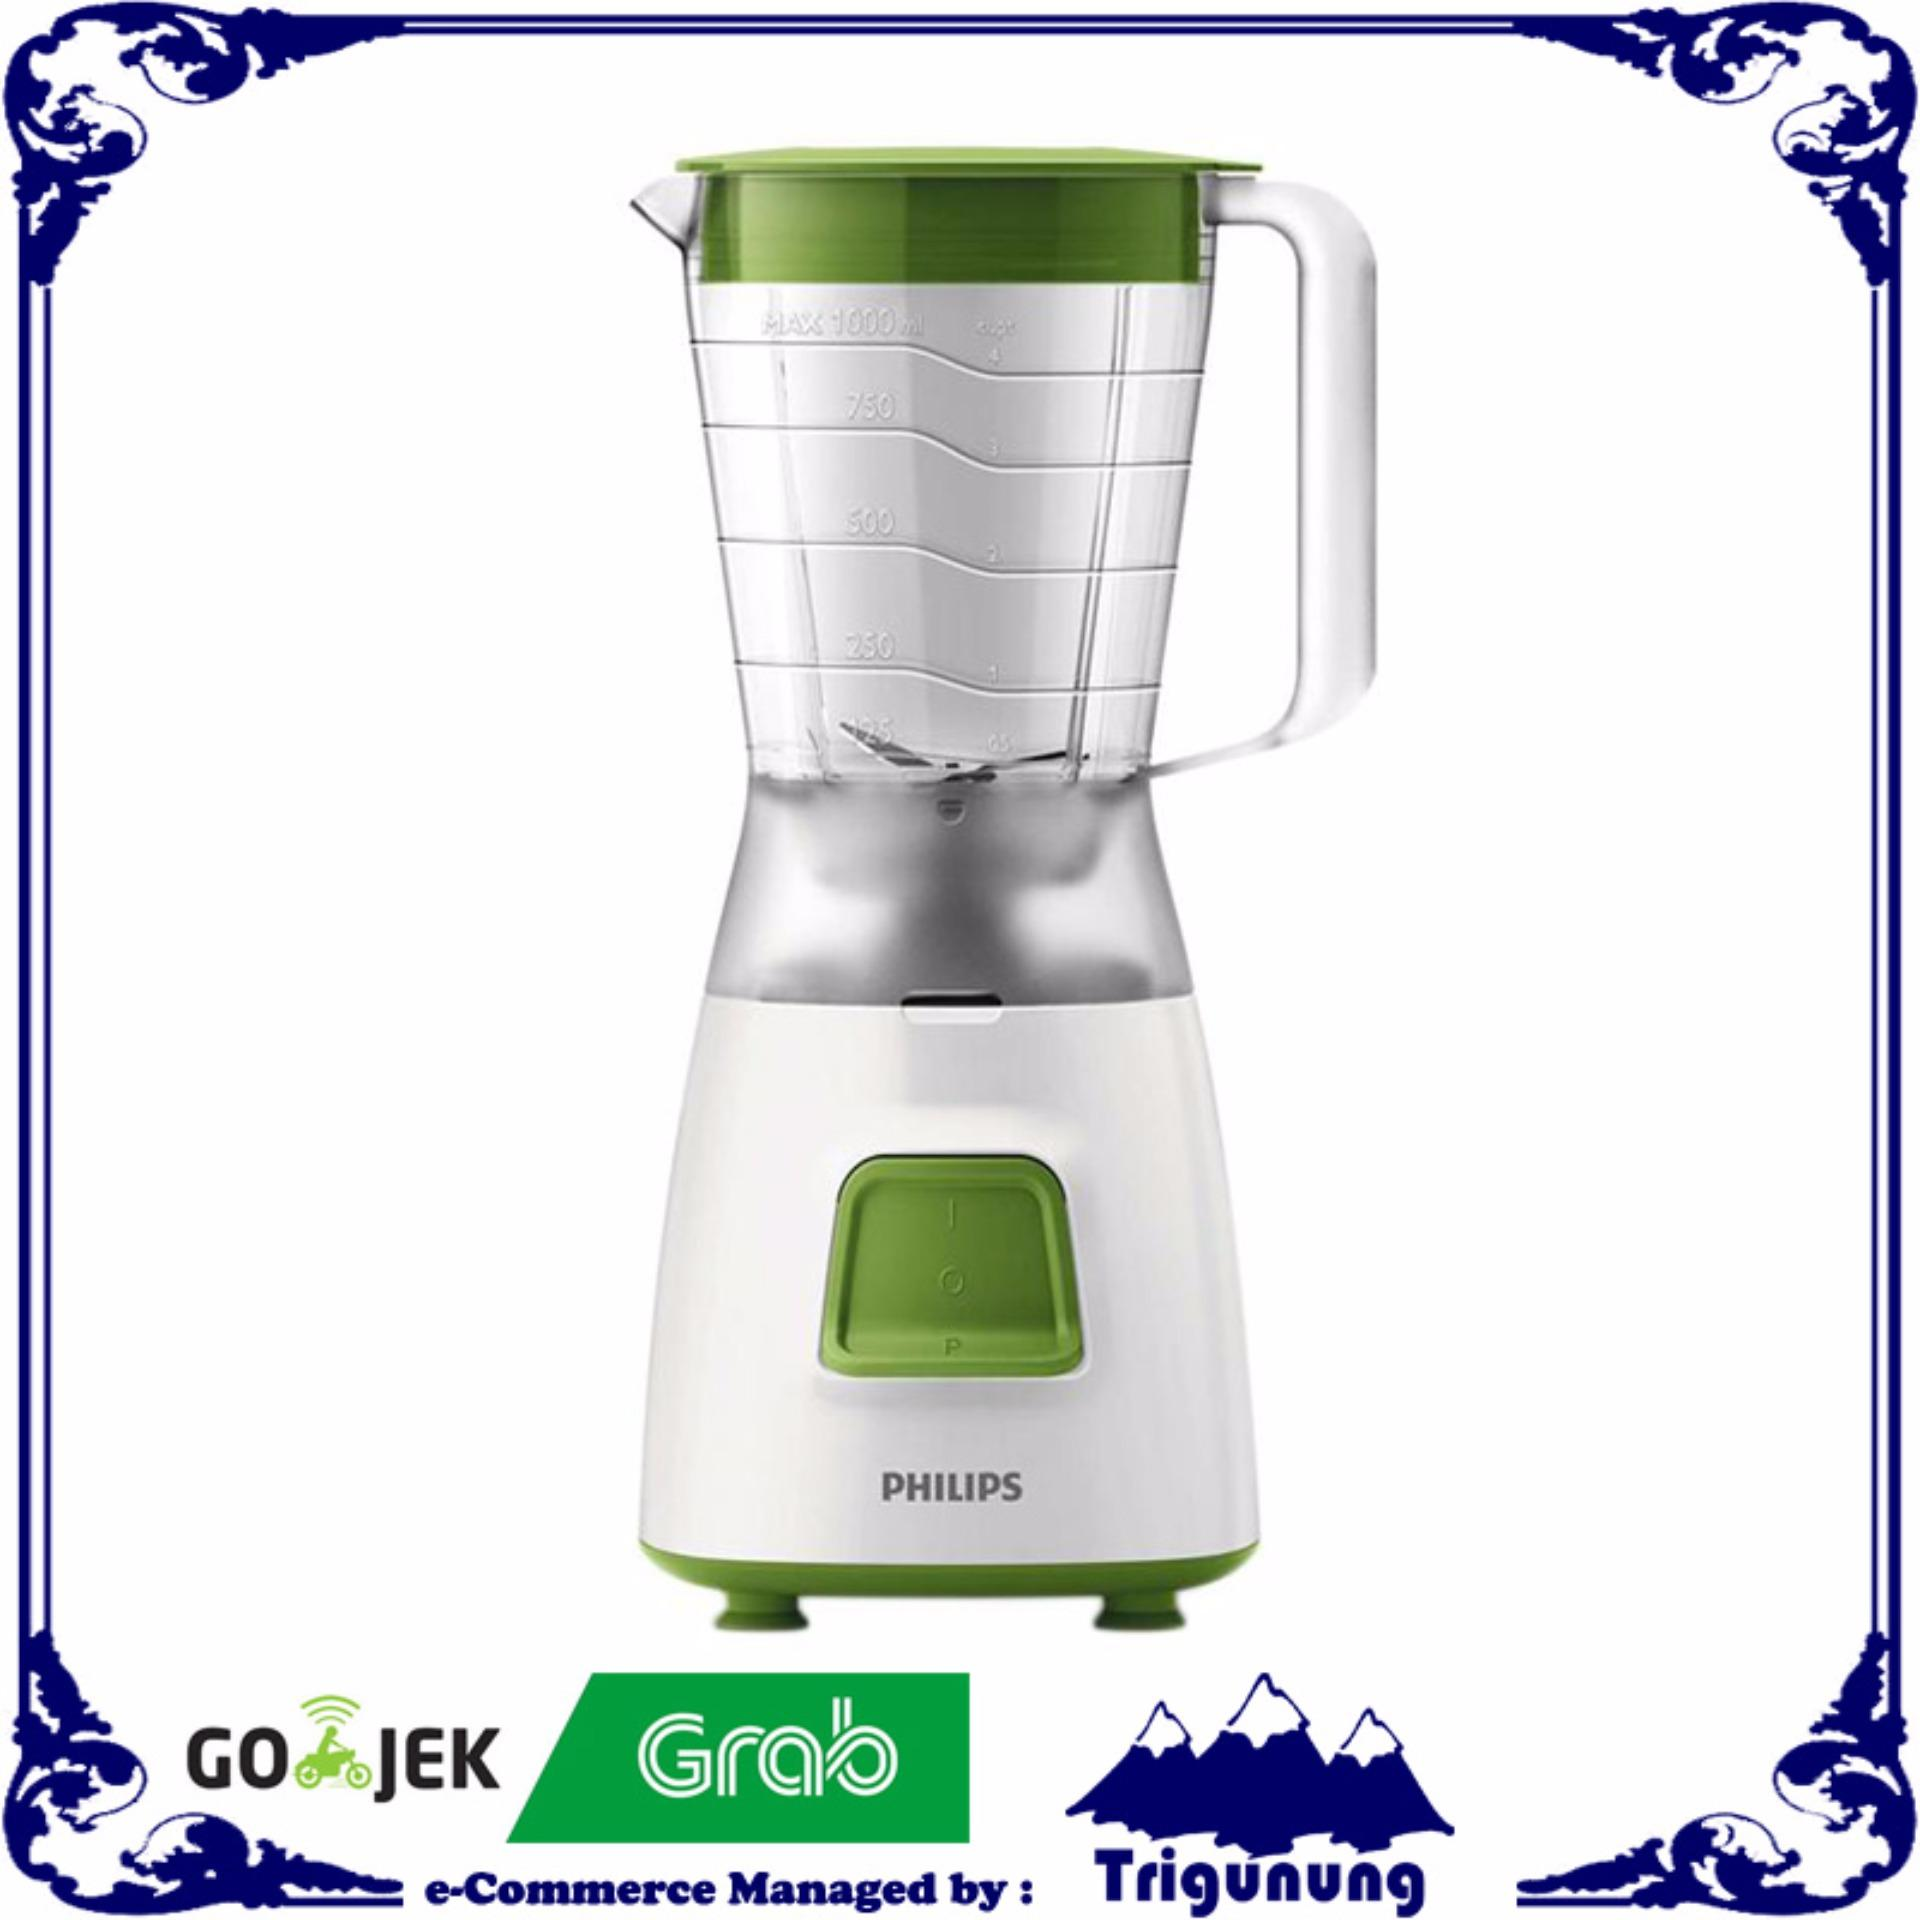 Philips - HR-2057/03 Blender Plastik 1.2L Green